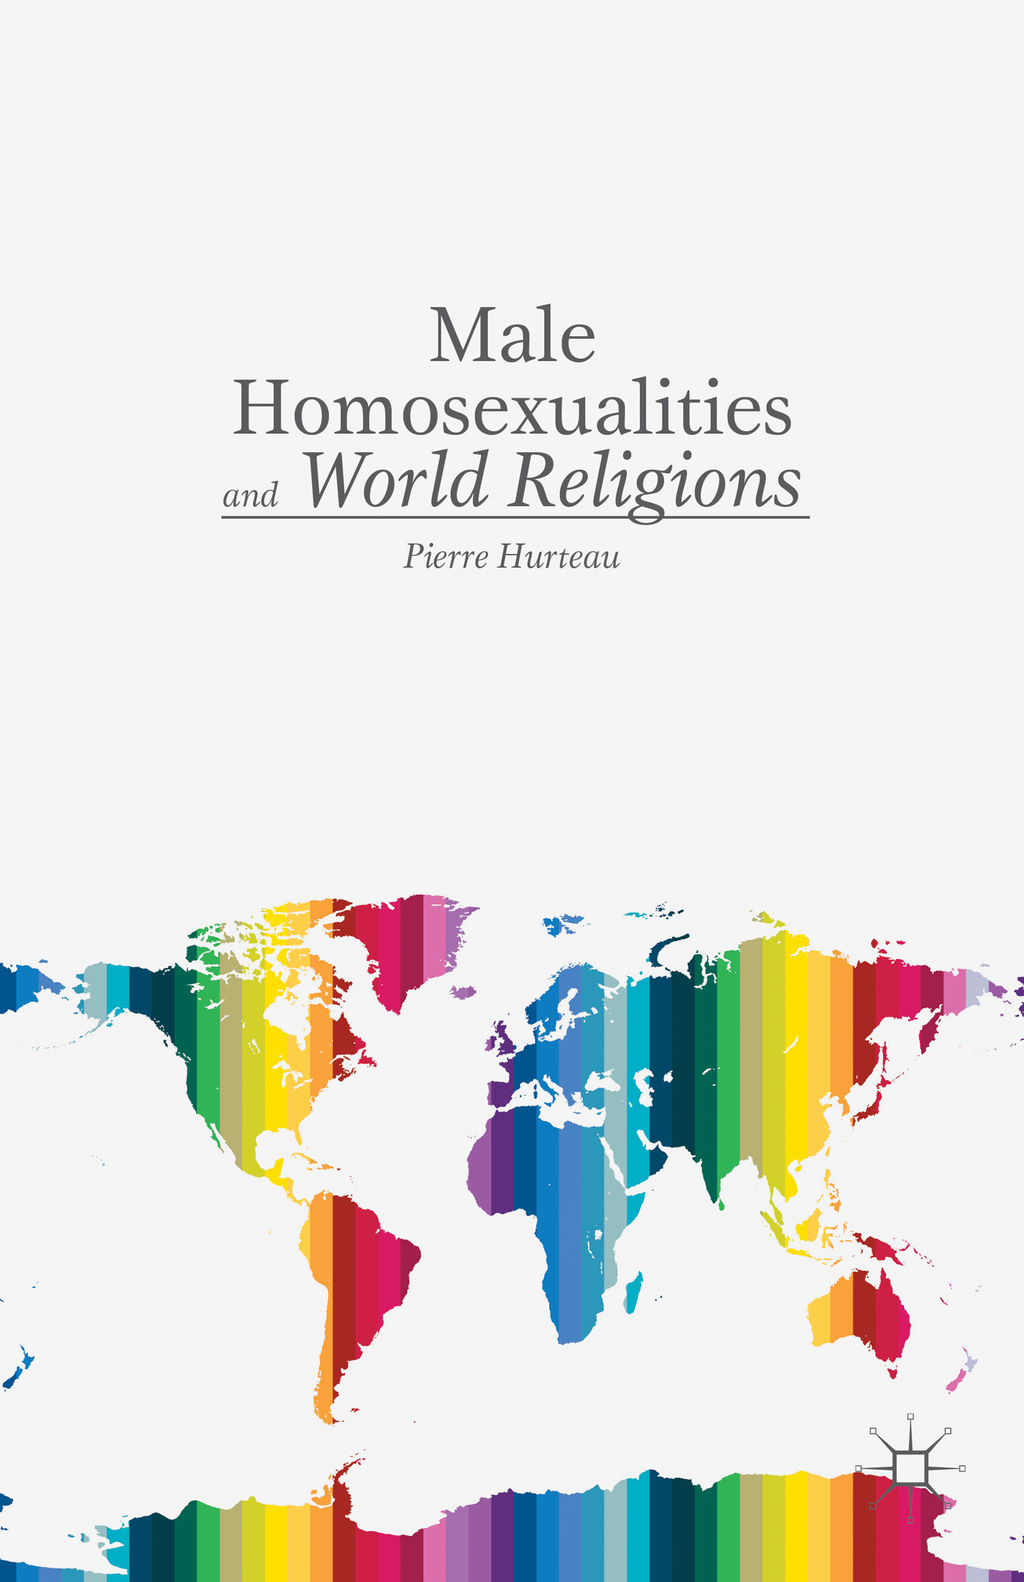 Male Homosexualities and World Religions